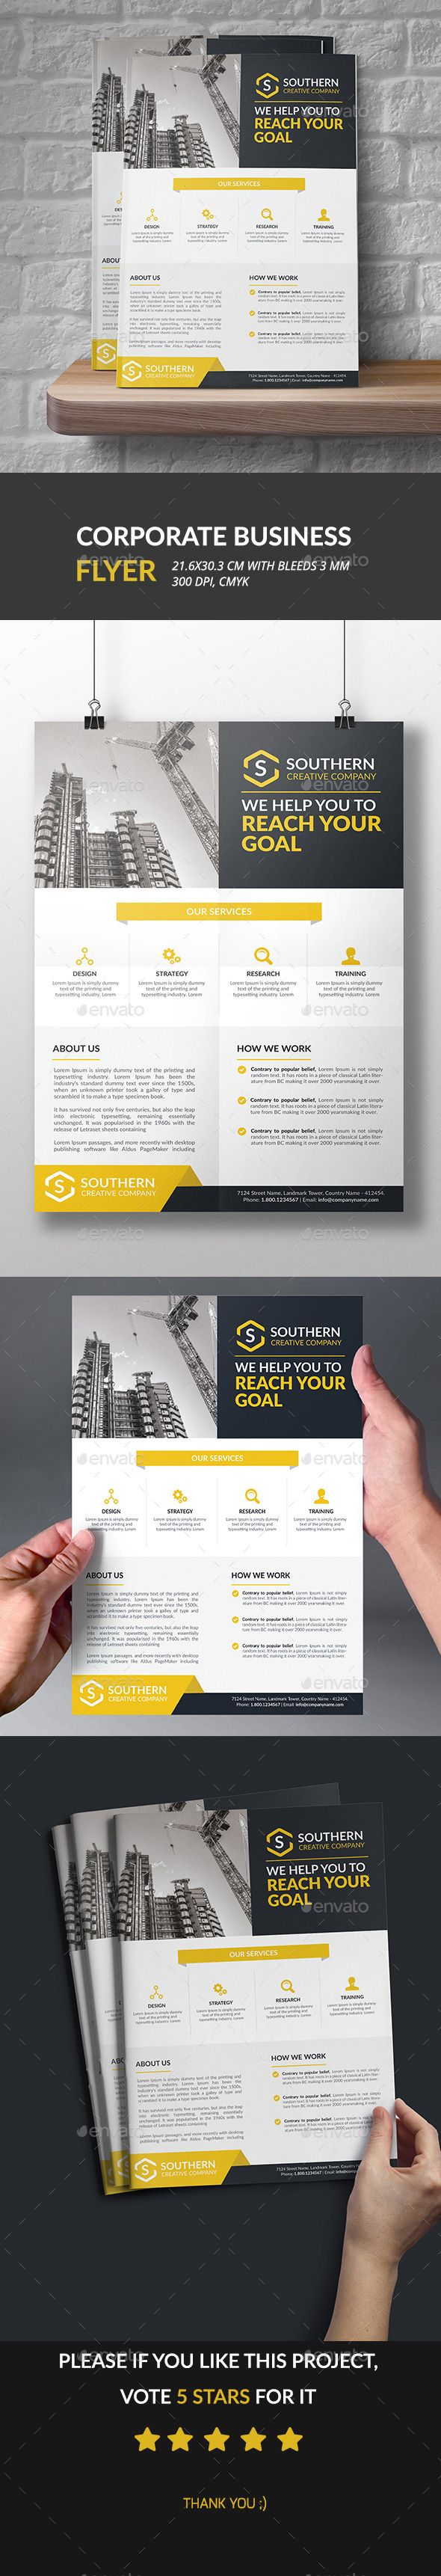 Corporate Business Flyer Template PSD #design Download: http://graphicriver.net/item/corporate-business-flyer/12913338?ref=ksioks